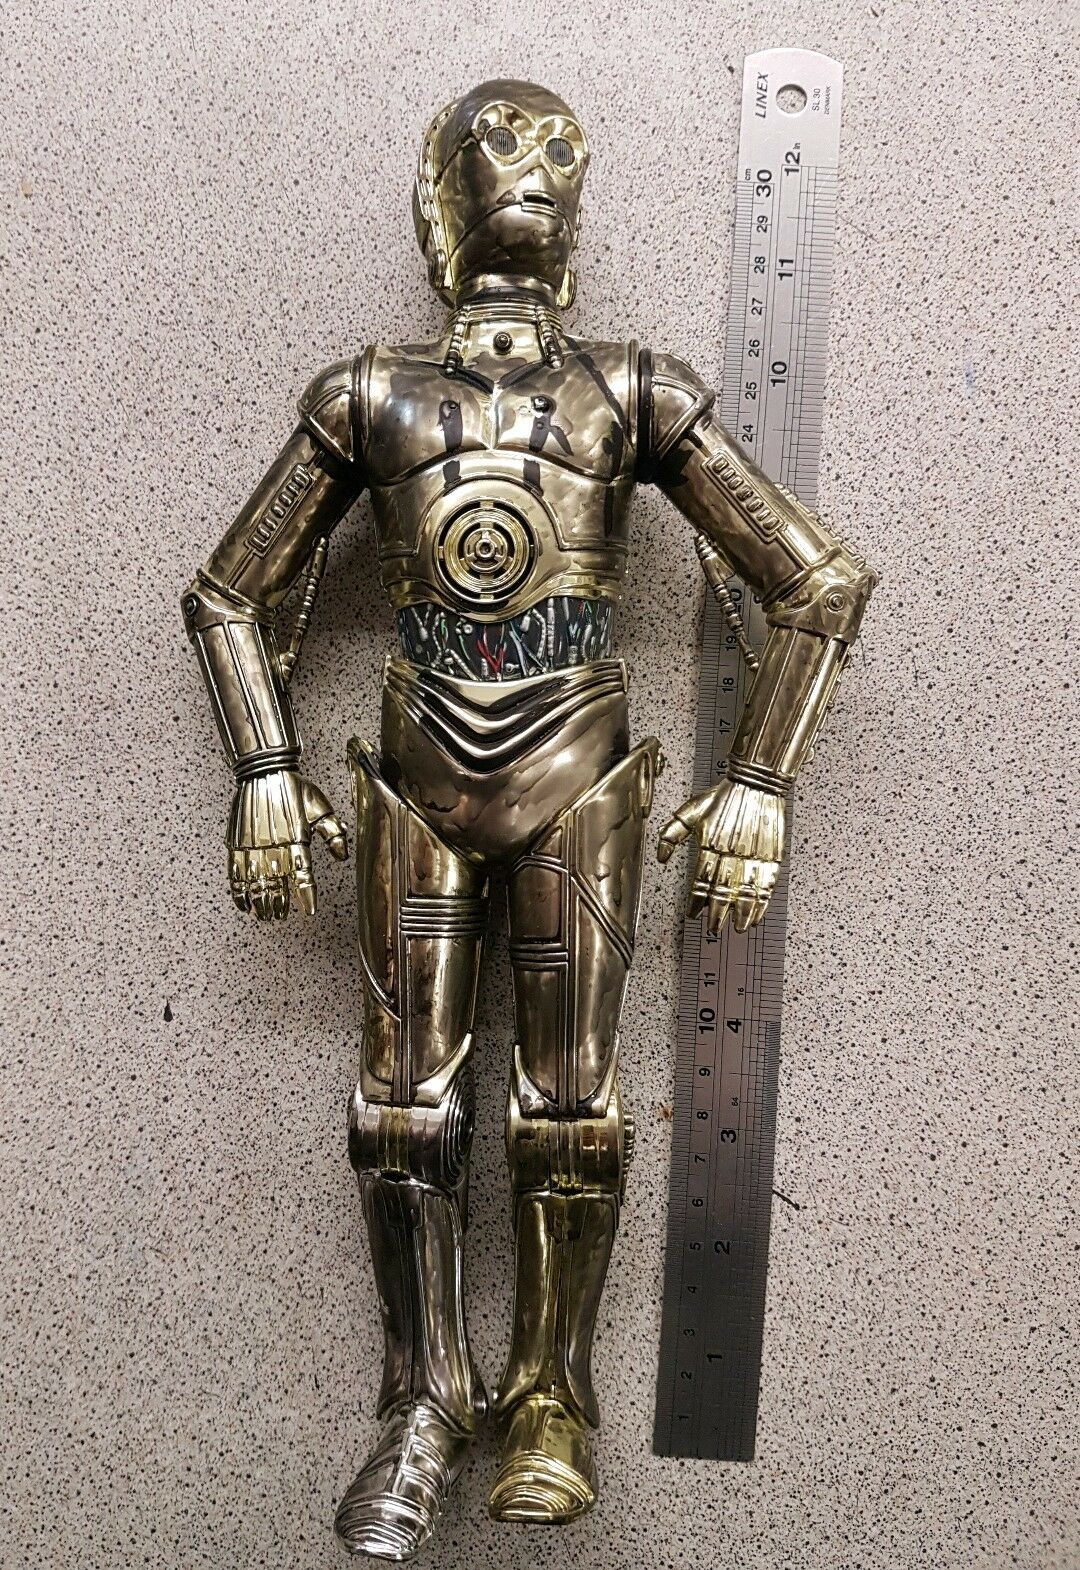 1 6 scale 1998 Star Wars 12 inch C3P0 talks and eyes light up ELECTRONIC works